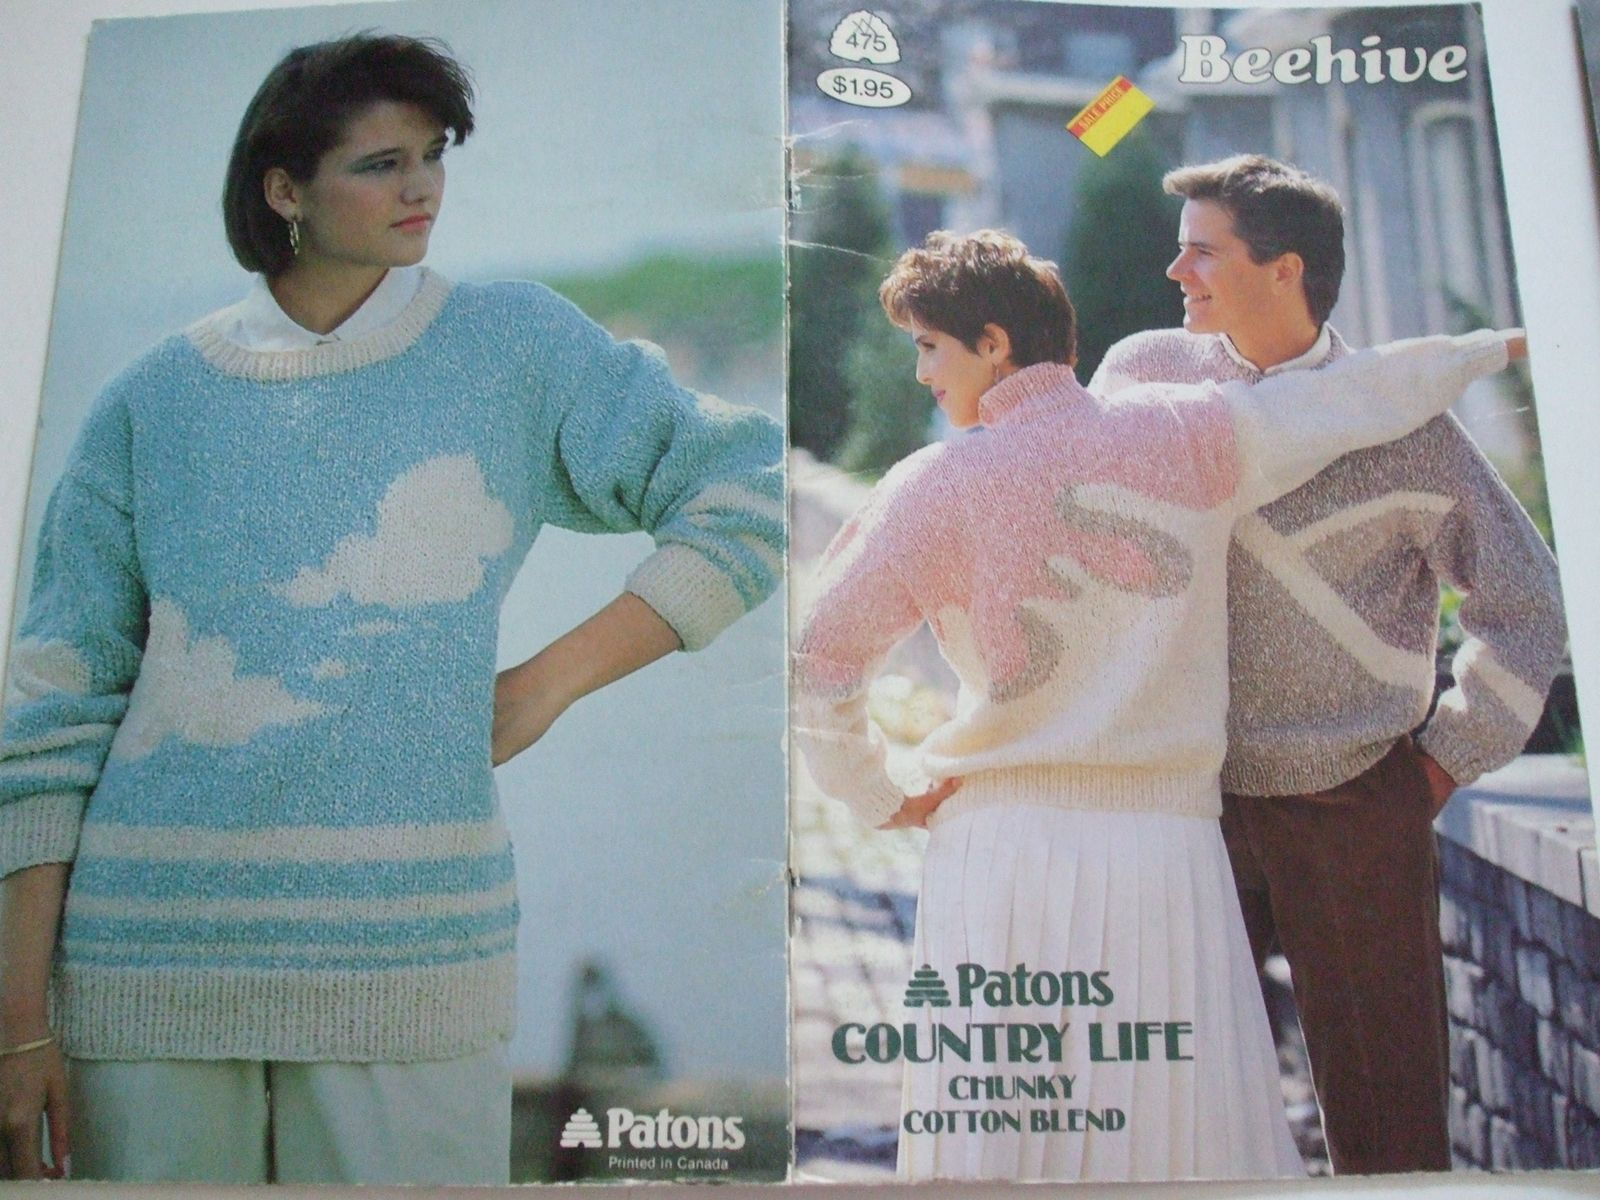 Second Silver - 475 country life chunky knitting patterns patons men ...